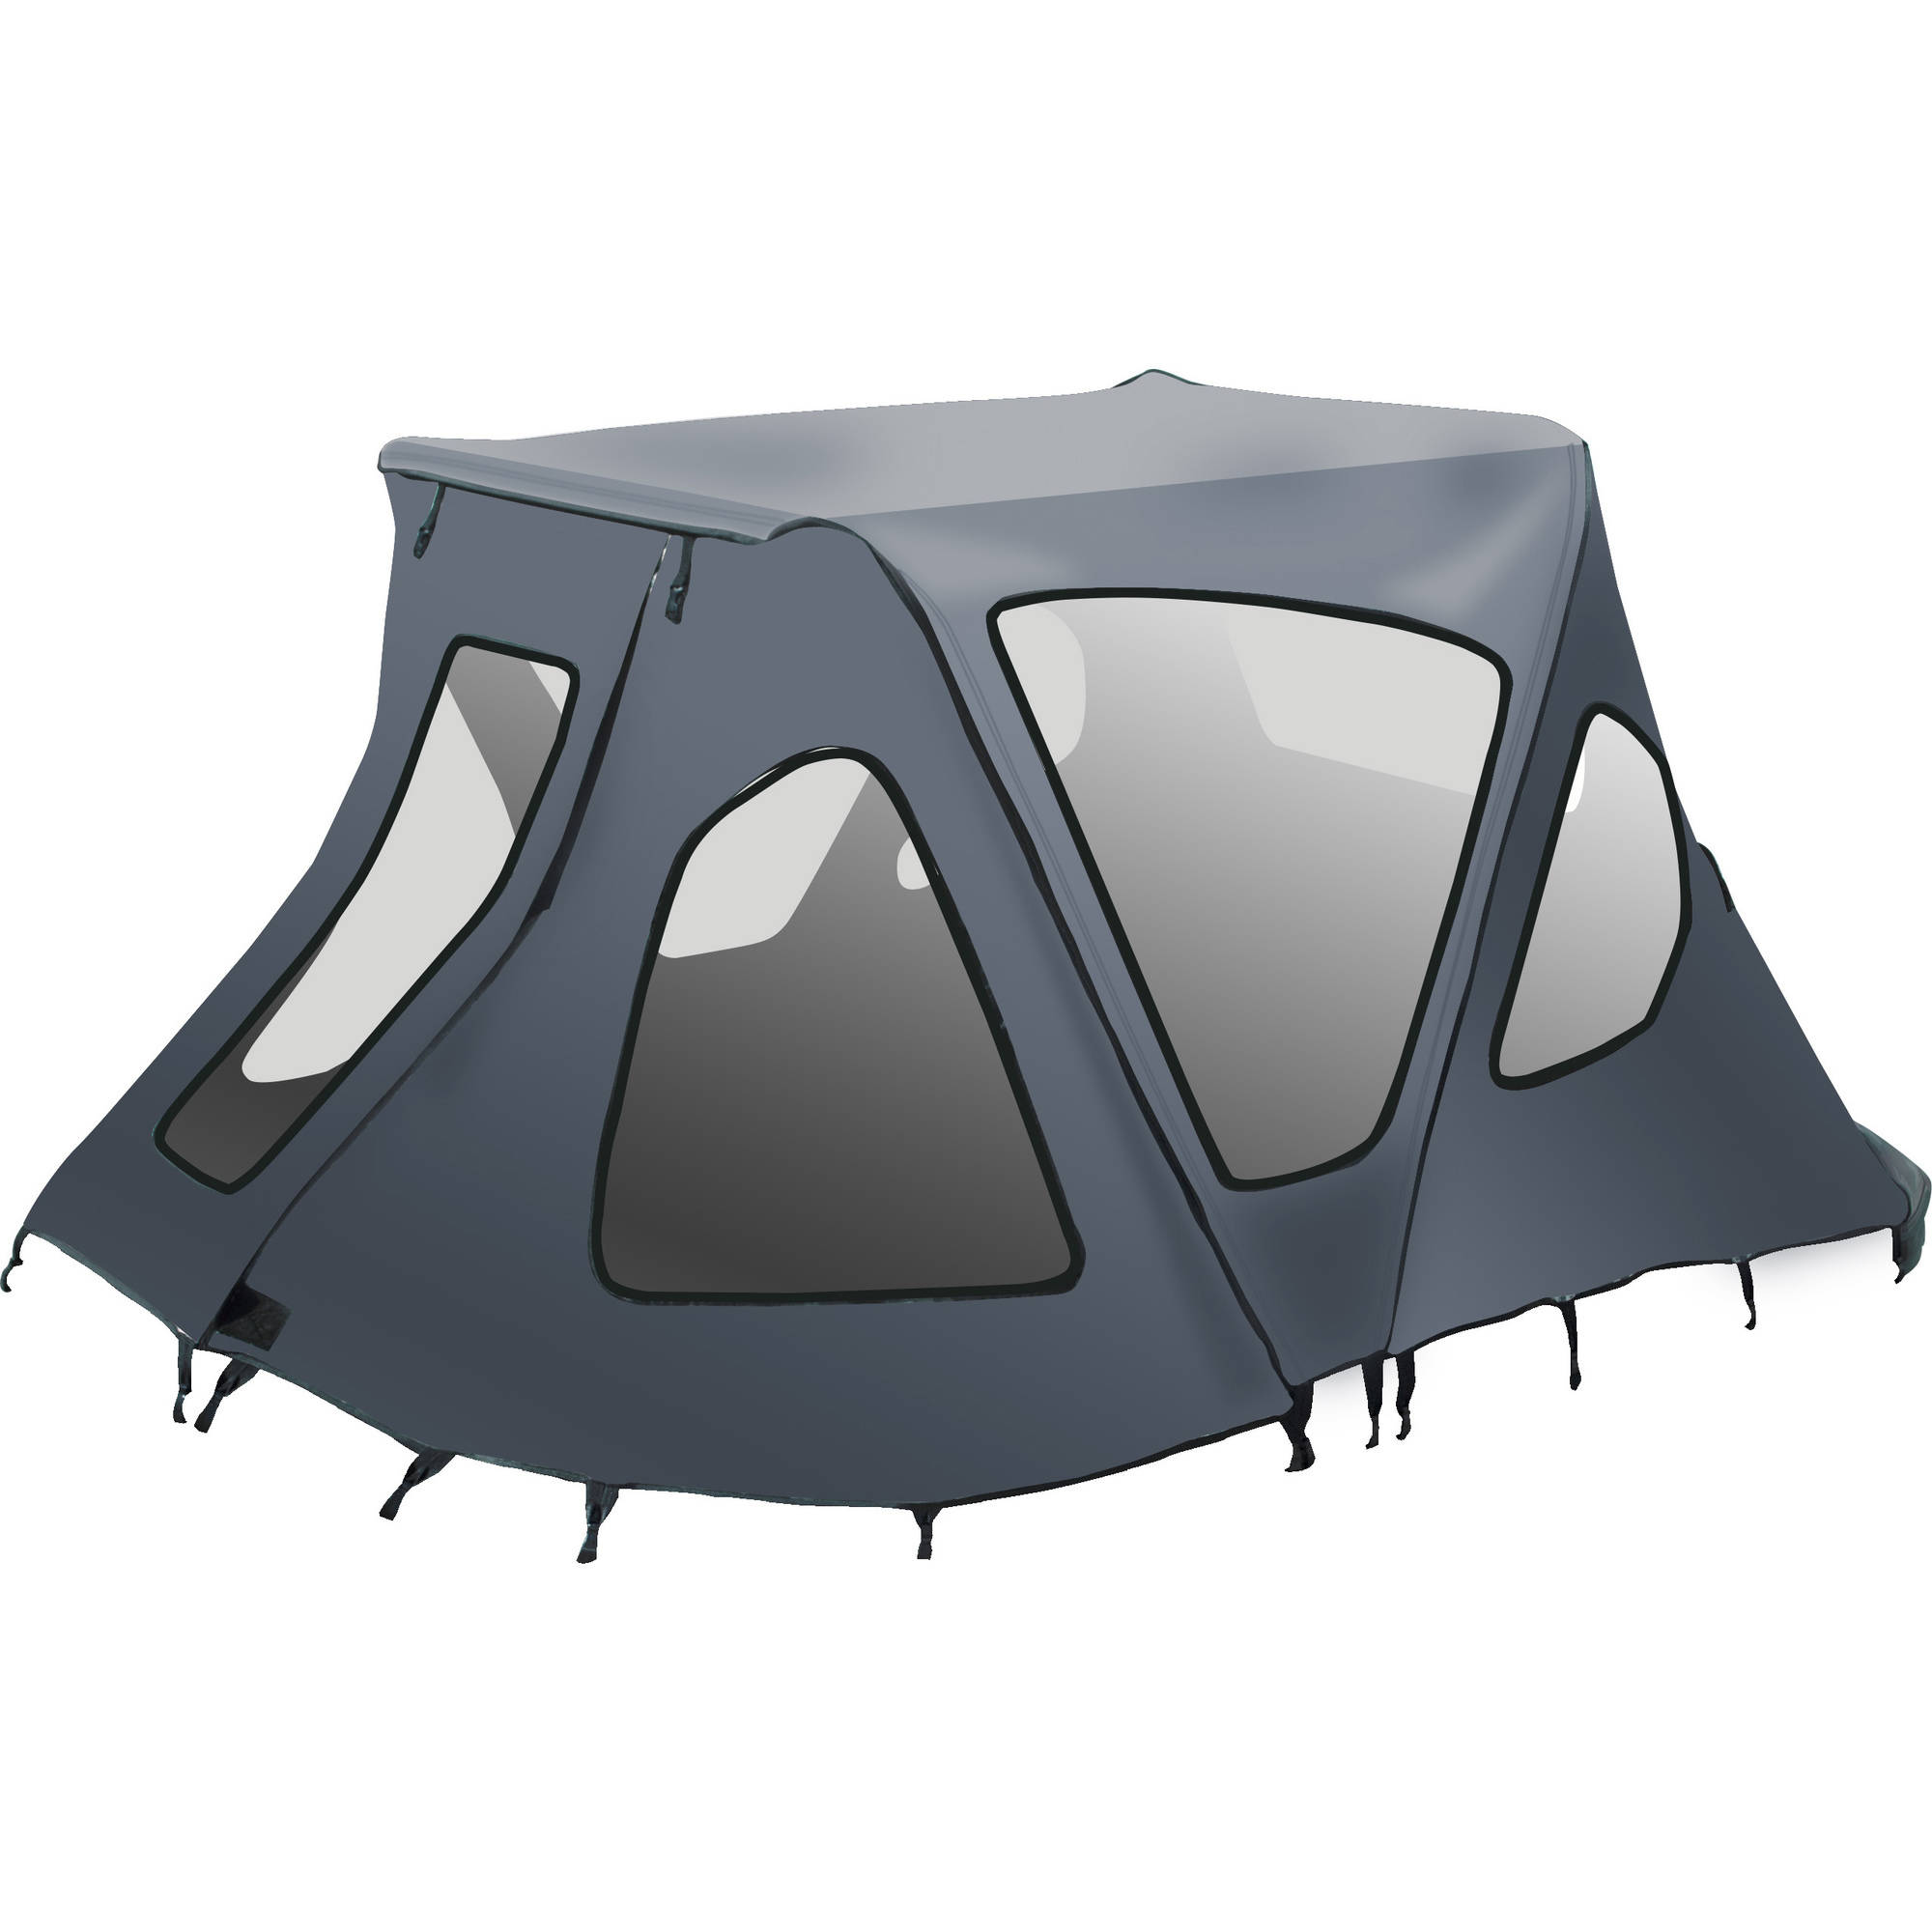 ALEKO BWTENT420G Winter Canopy Boat Tent Rain Sun Wind Snow Waterproof Shelter Covering for Inflatable Boat  sc 1 st  Walmart & ALEKO BWTENT420G Winter Canopy Boat Tent Rain Sun Wind Snow ...